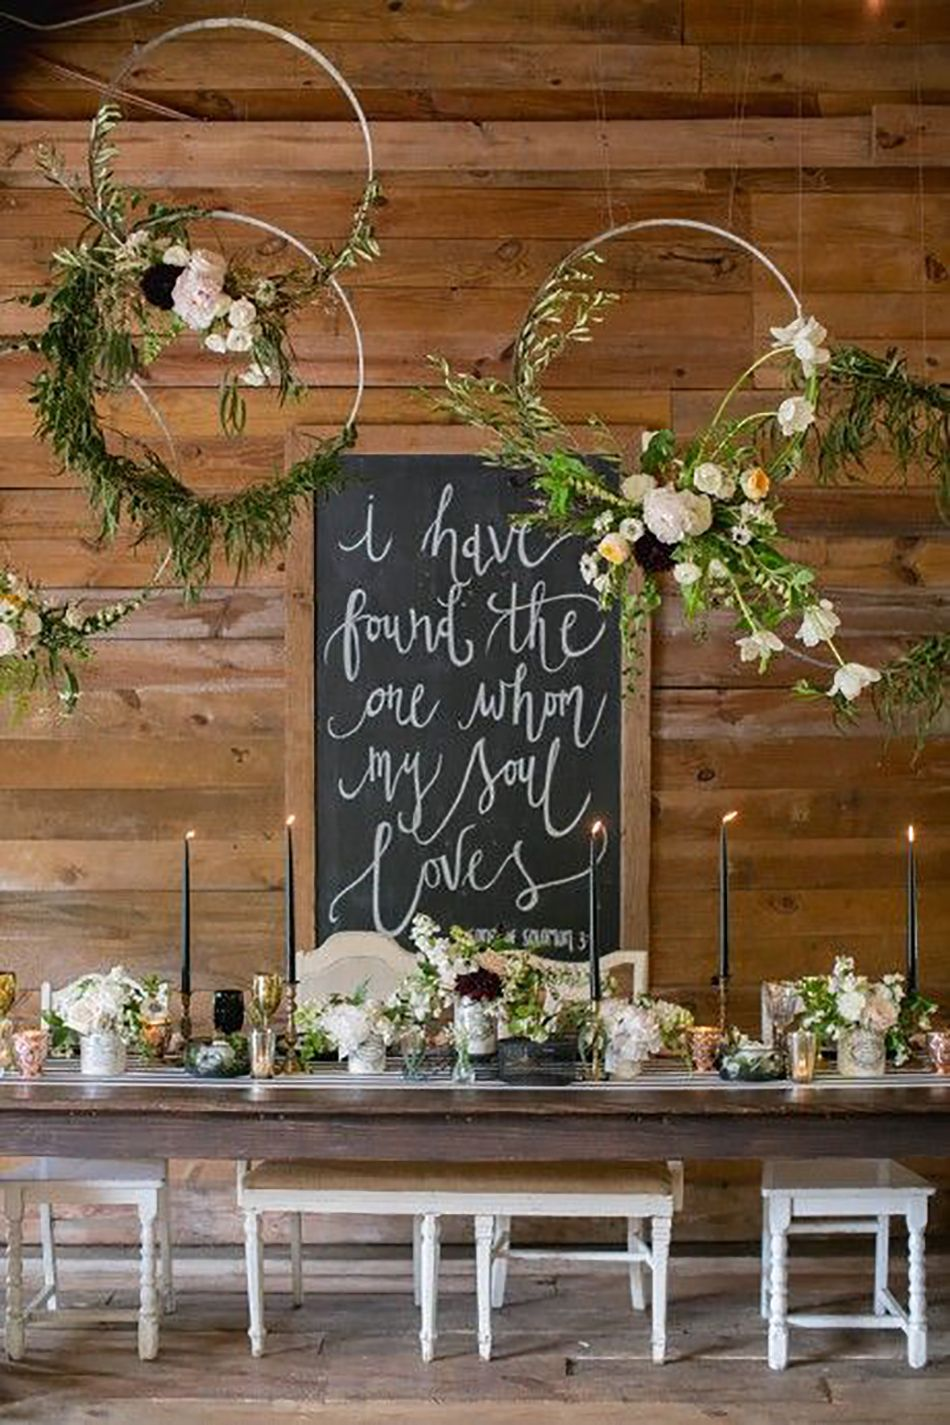 Hanging flower decorations above a wedding table